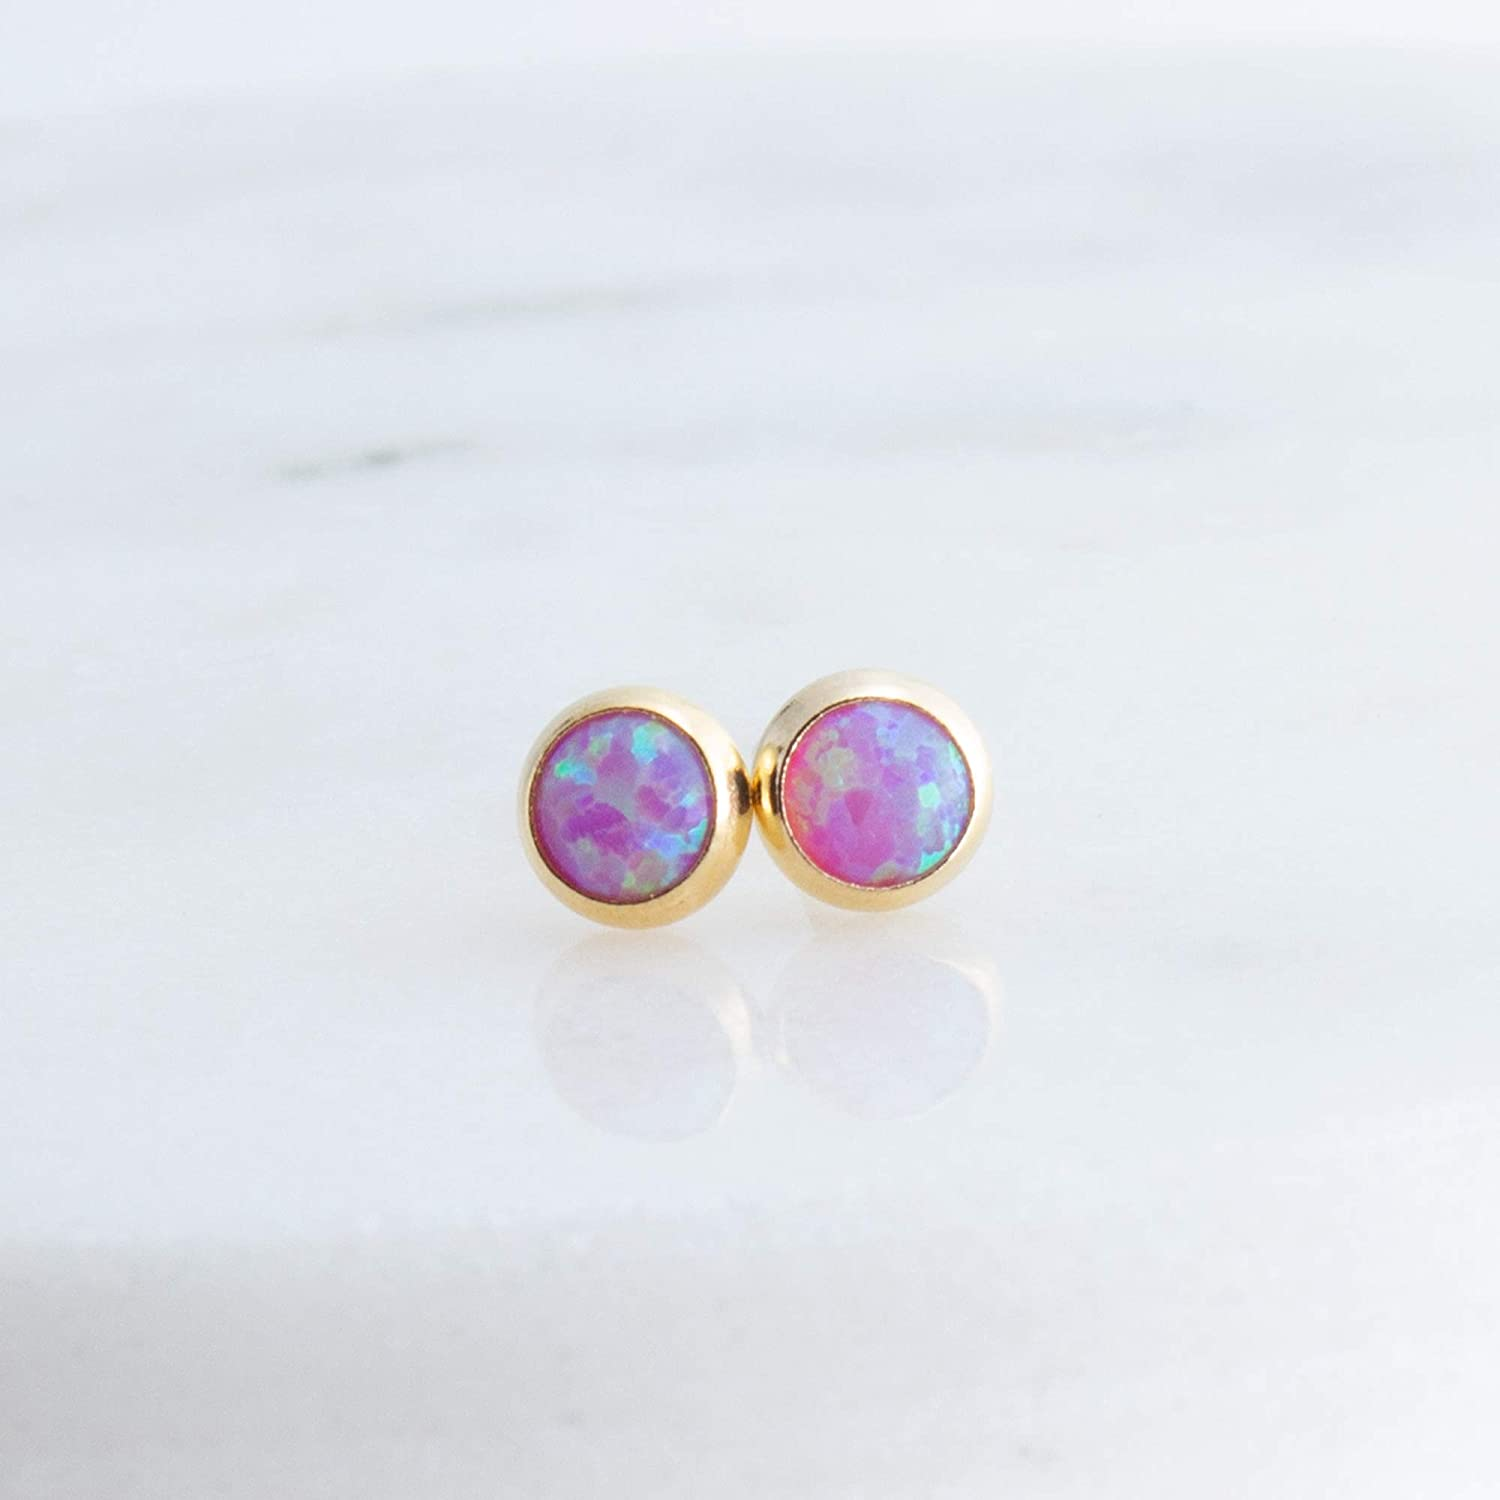 Pink Opal Stone 4mm with 14K Gold Filled Stud Earrings